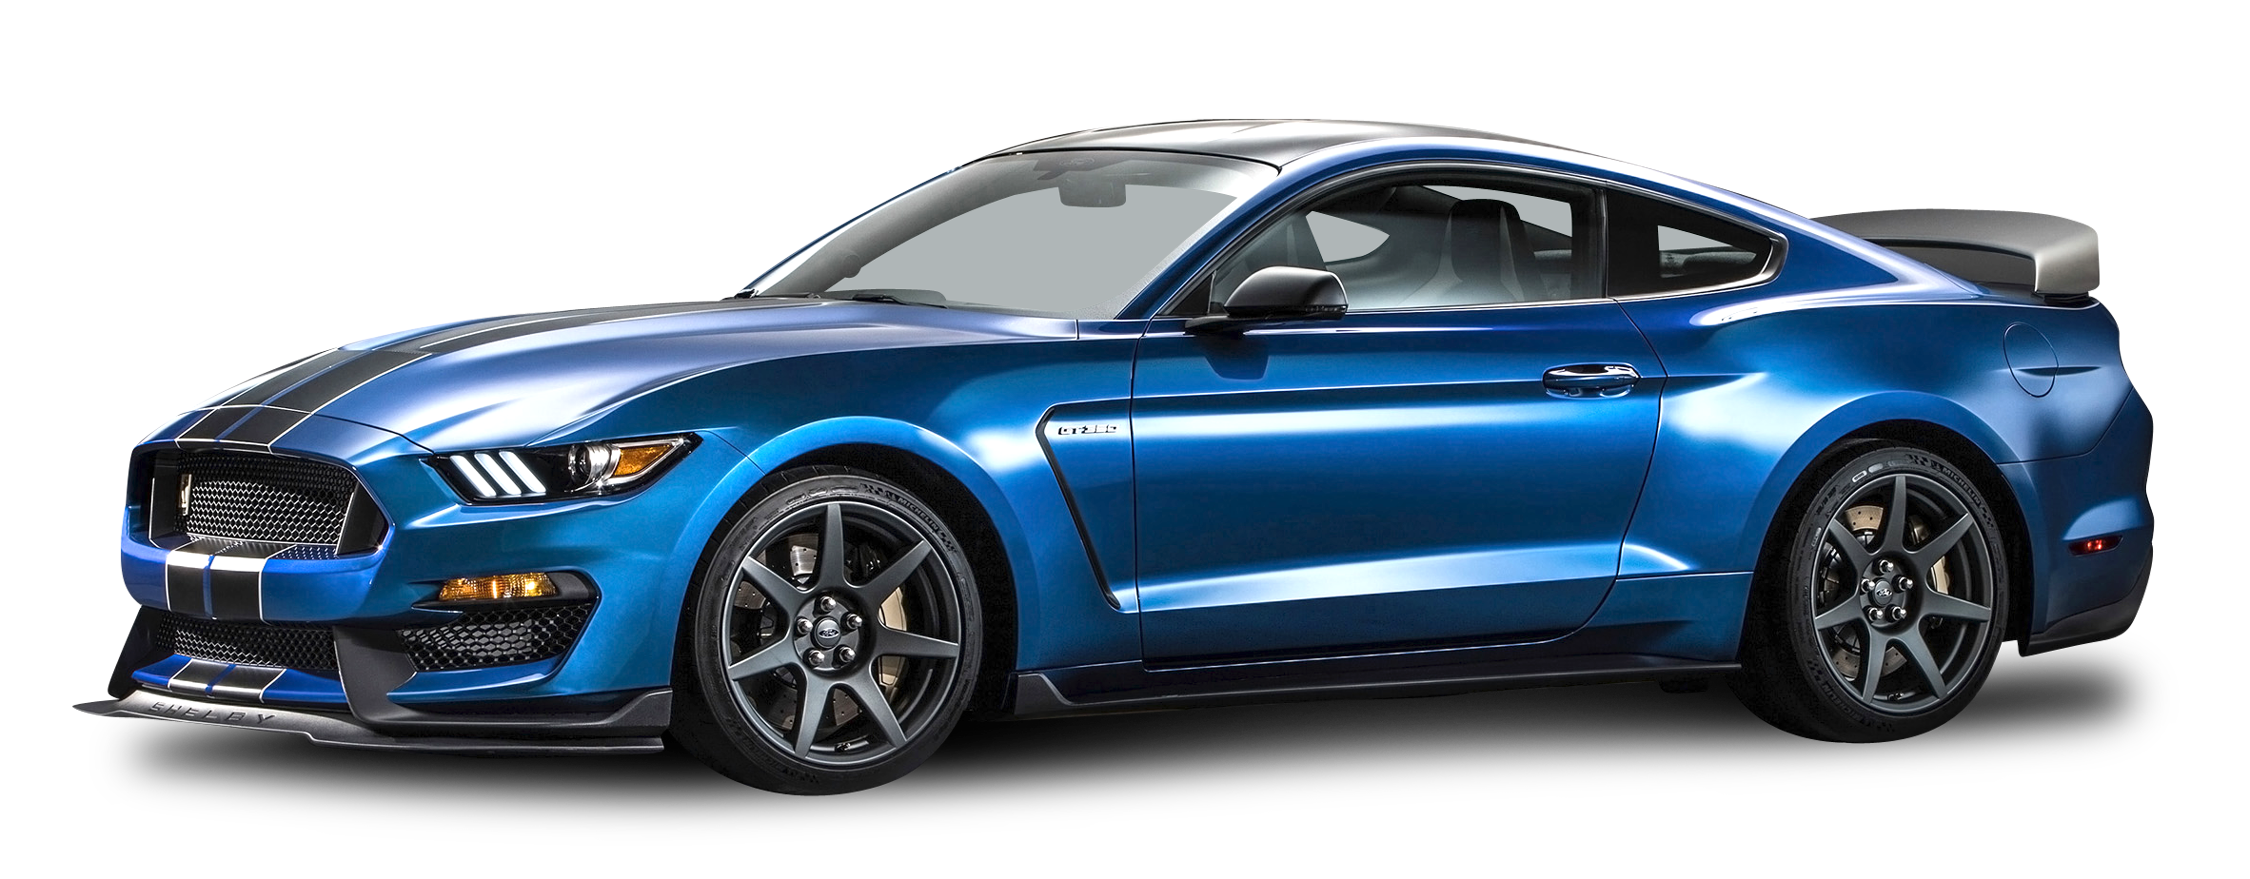 Blue Ford Shelby GT350R Mustang Car